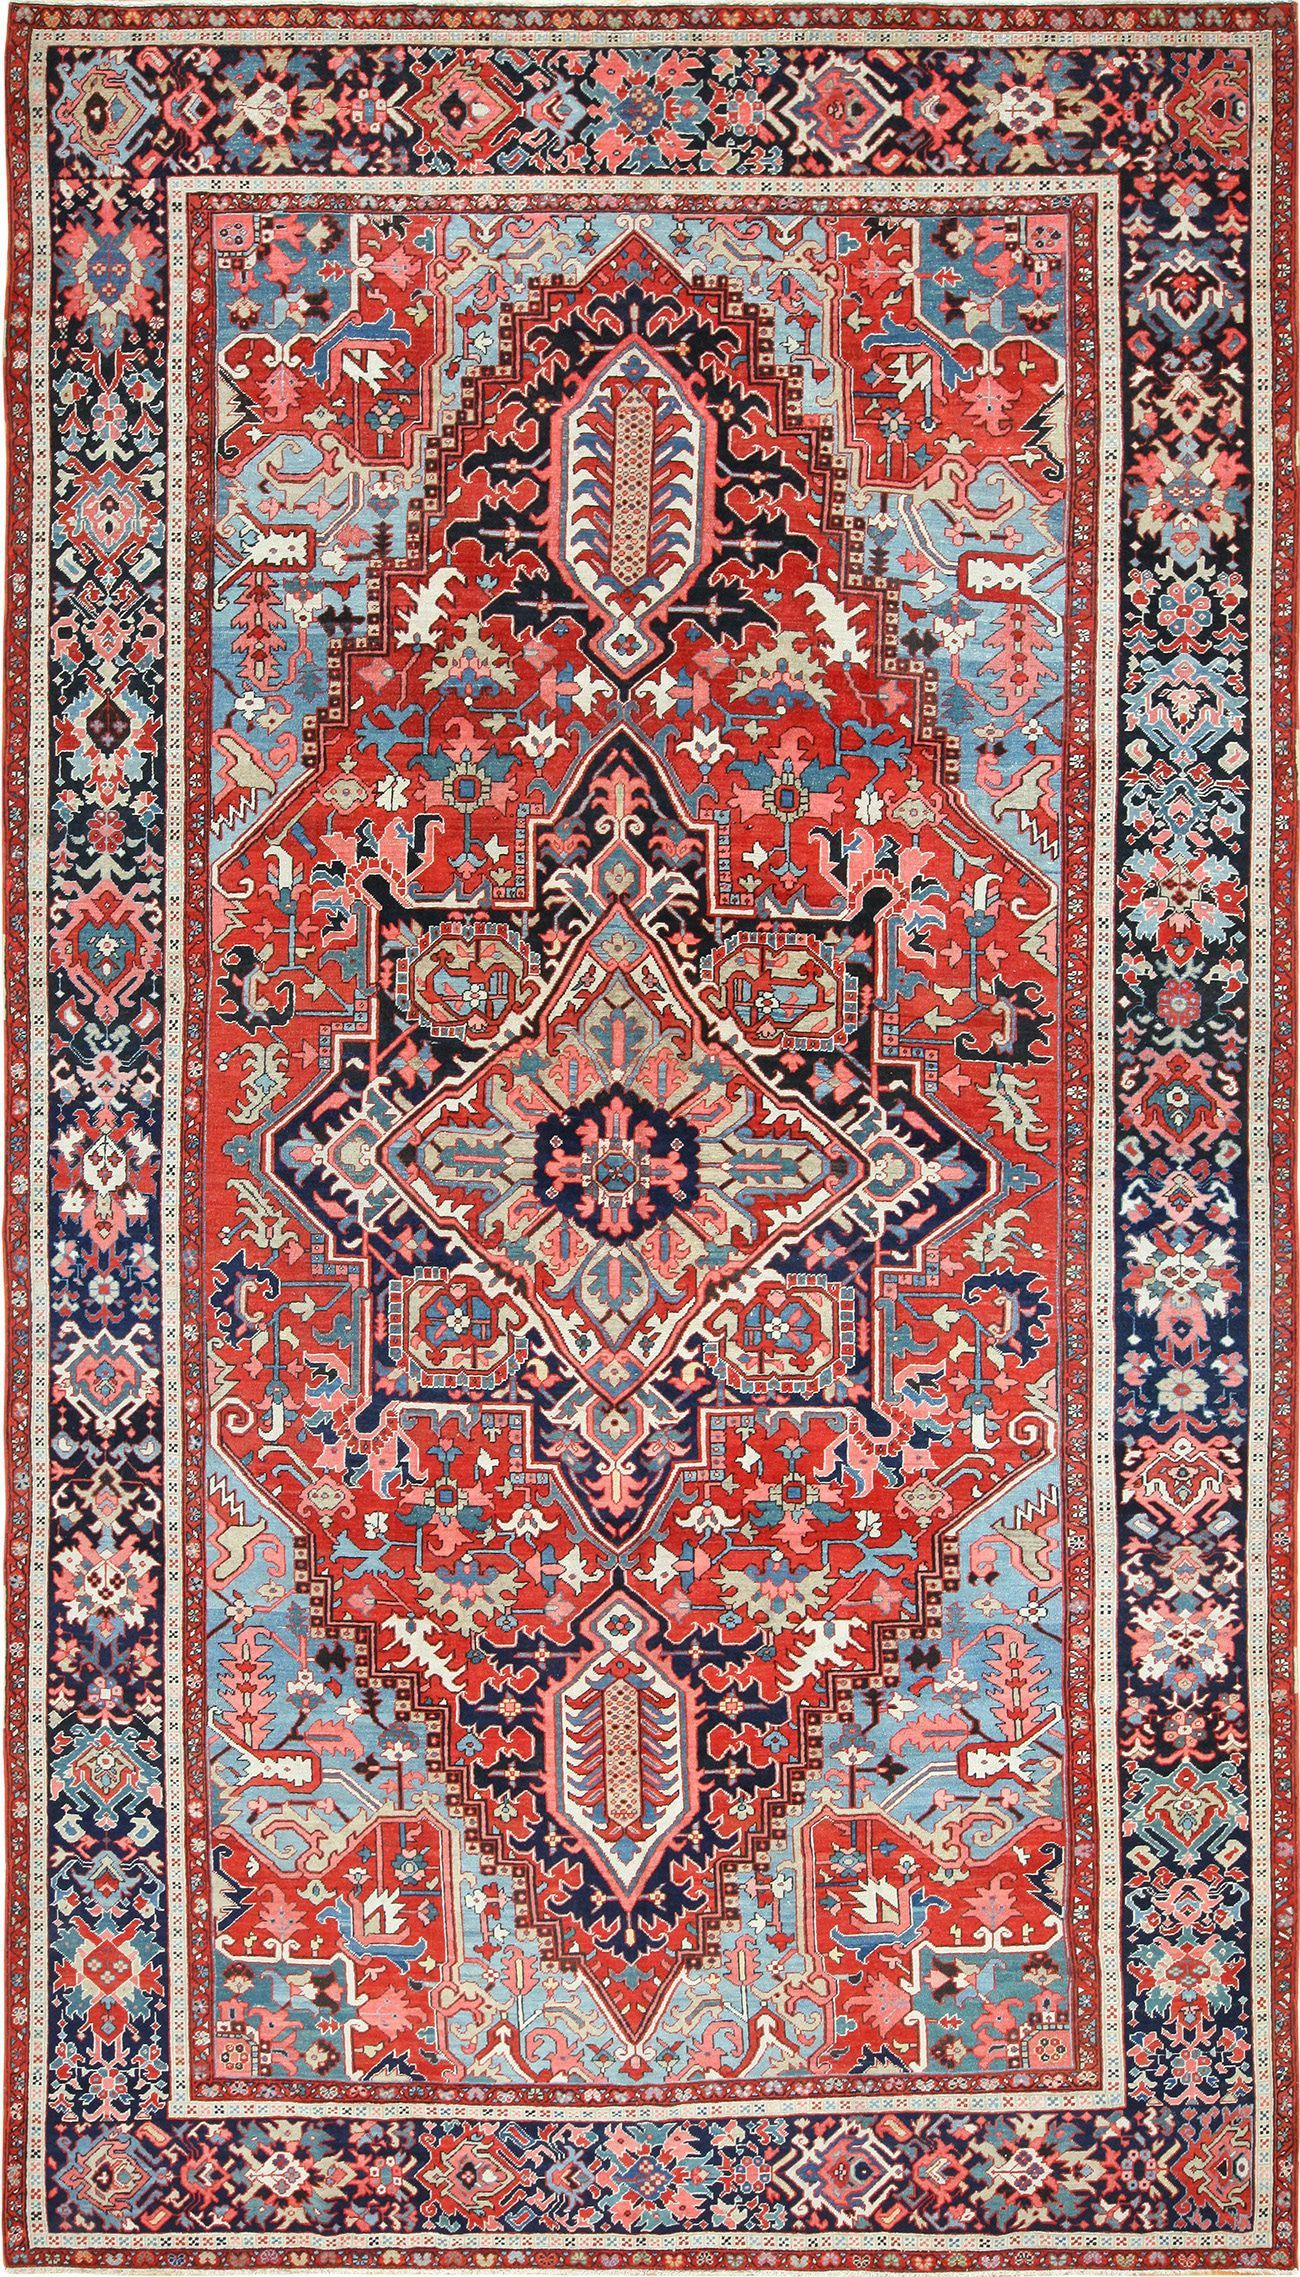 View This Magnificent Large Oriental Antique Persian Serapi Heriz Rug 49392 Available For Sale At Nazmiyal An Rugs On Carpet Antique Persian Carpet Heriz Rugs